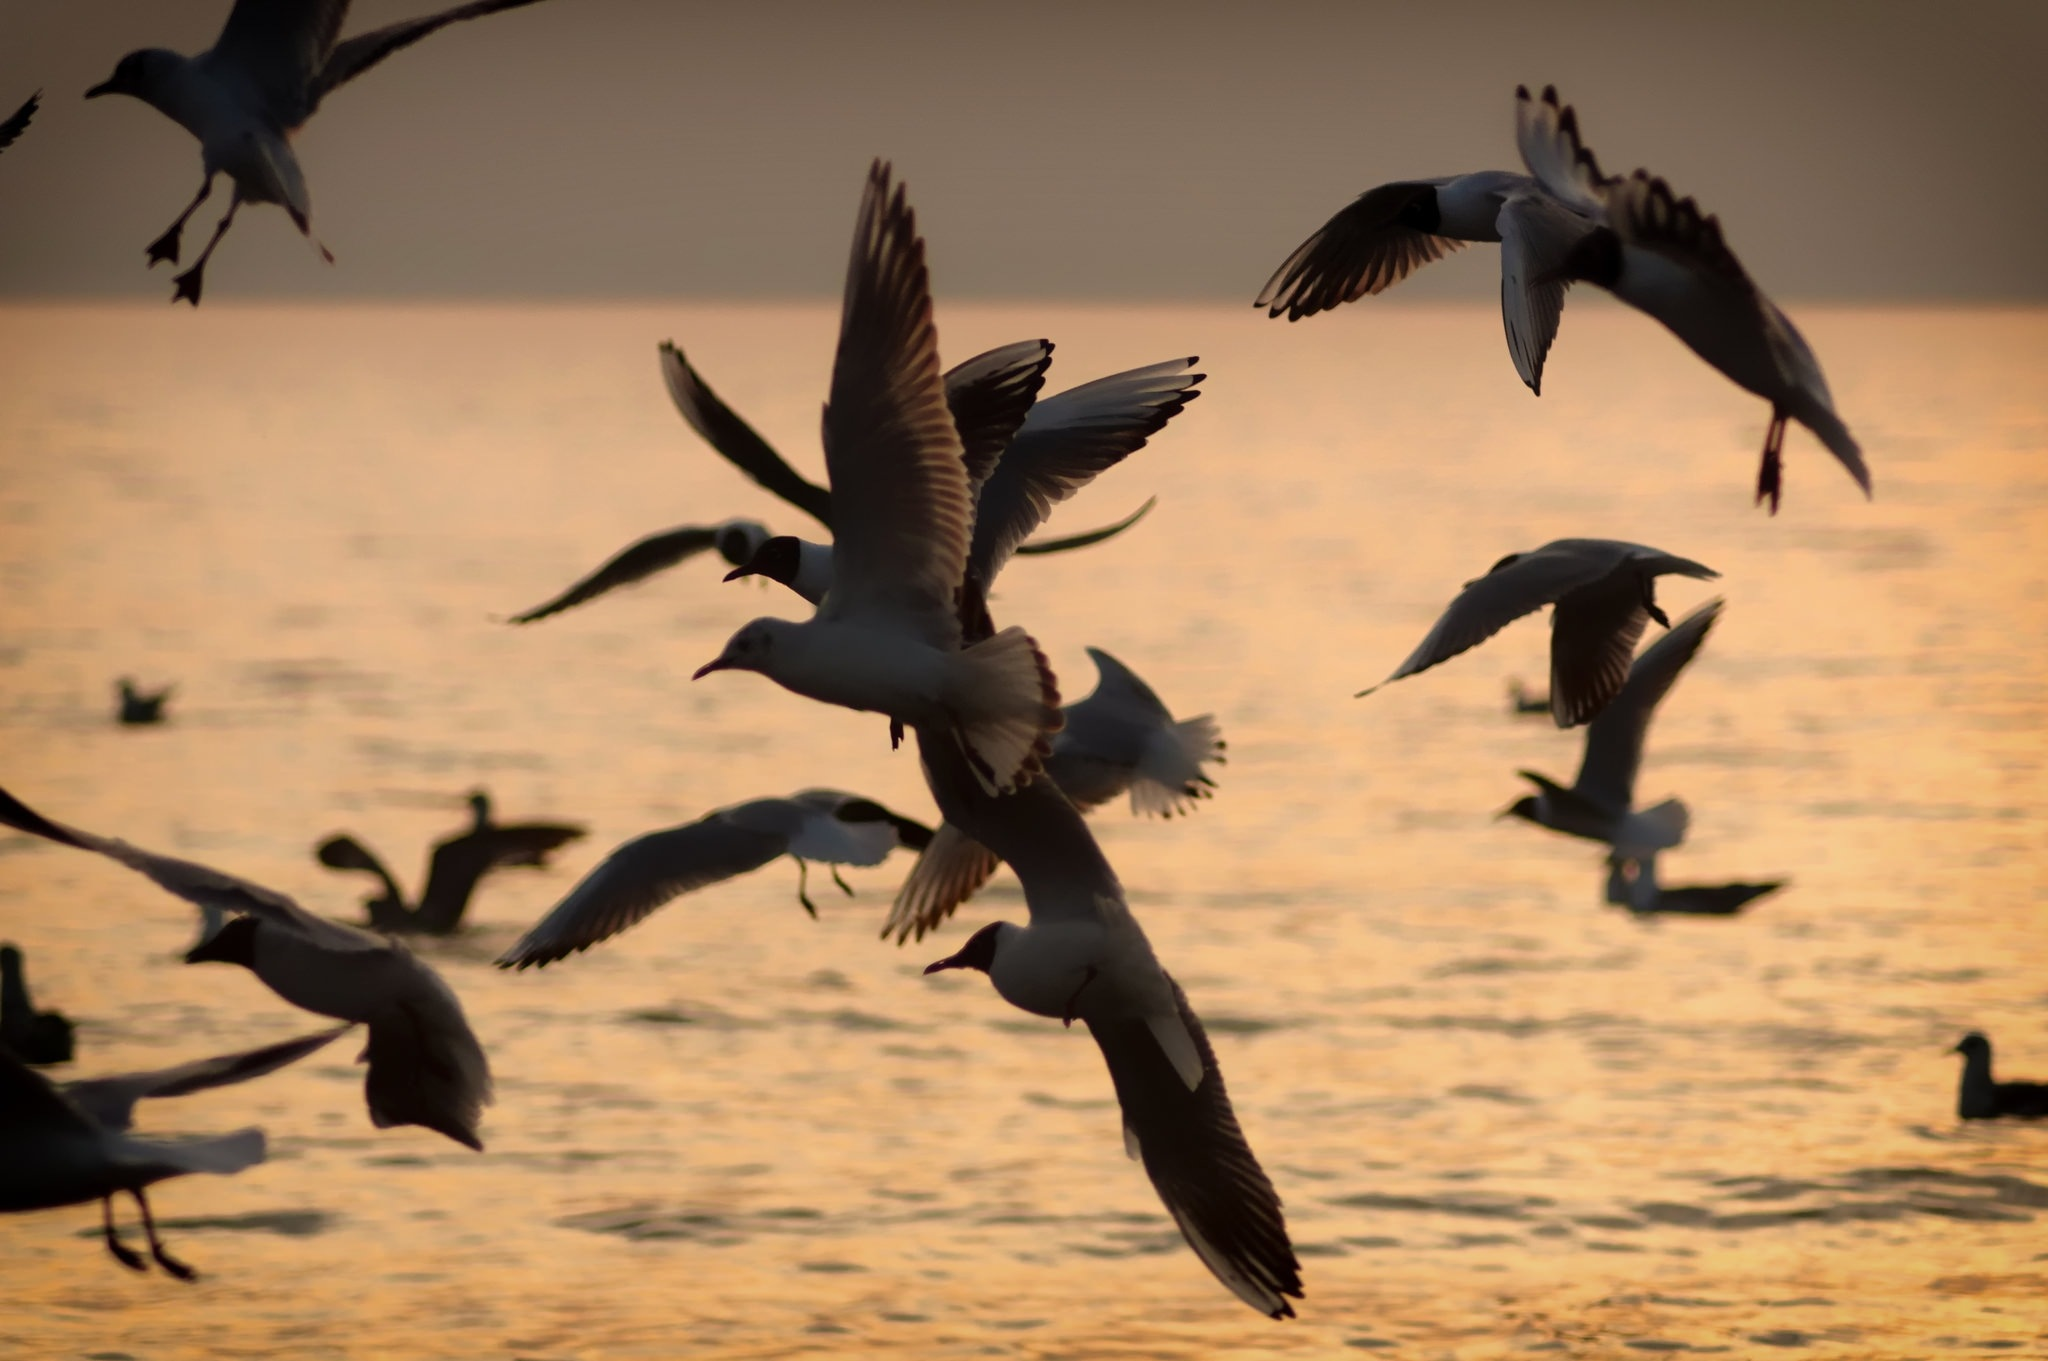 Evening Seagulls by just._.tea